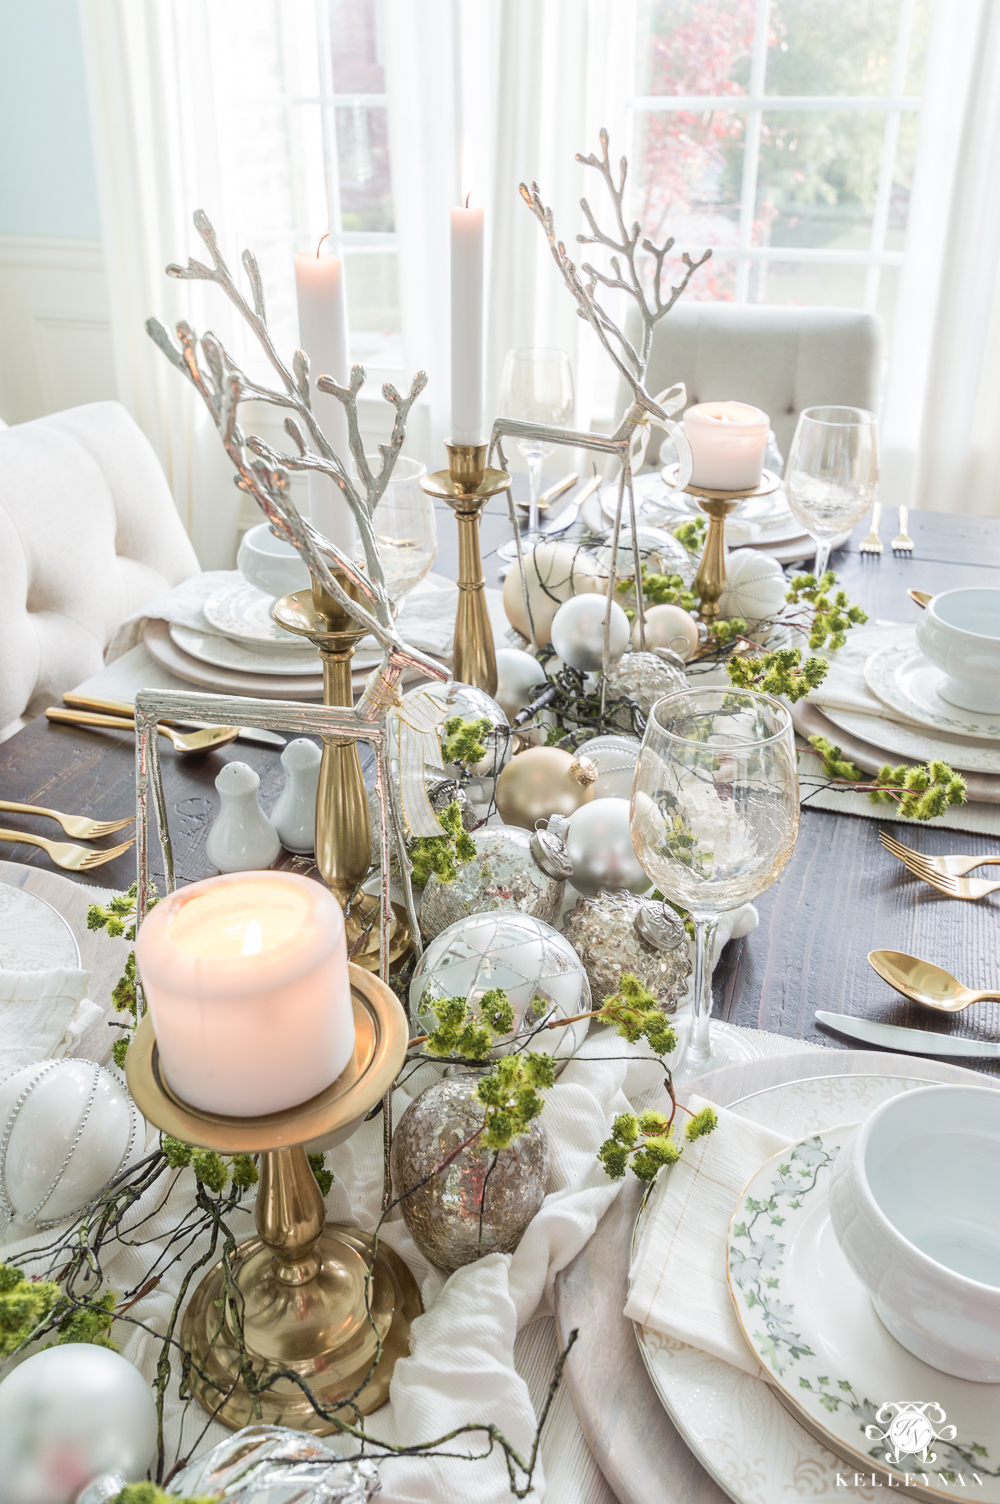 christmas tablescapes - Holiday decoration ideas www.flightofspice.com -1